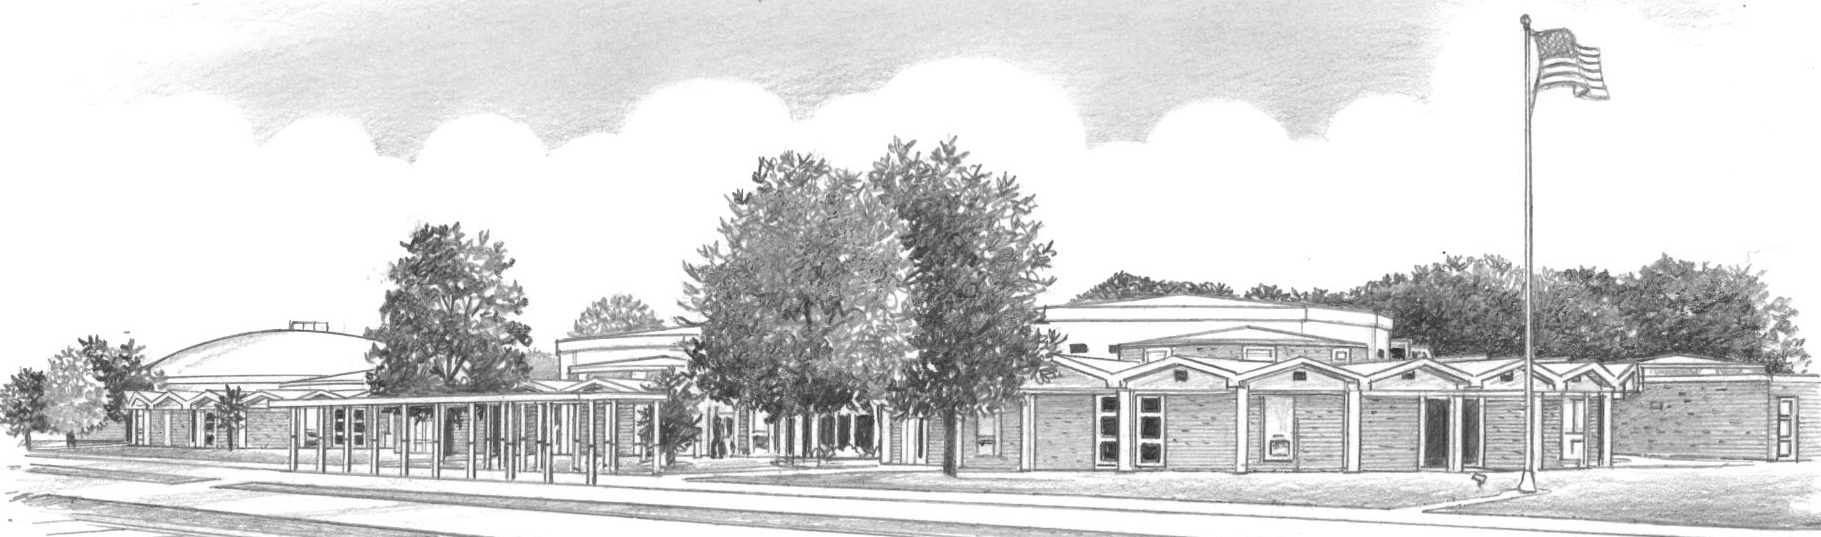 Drawing of Central High School